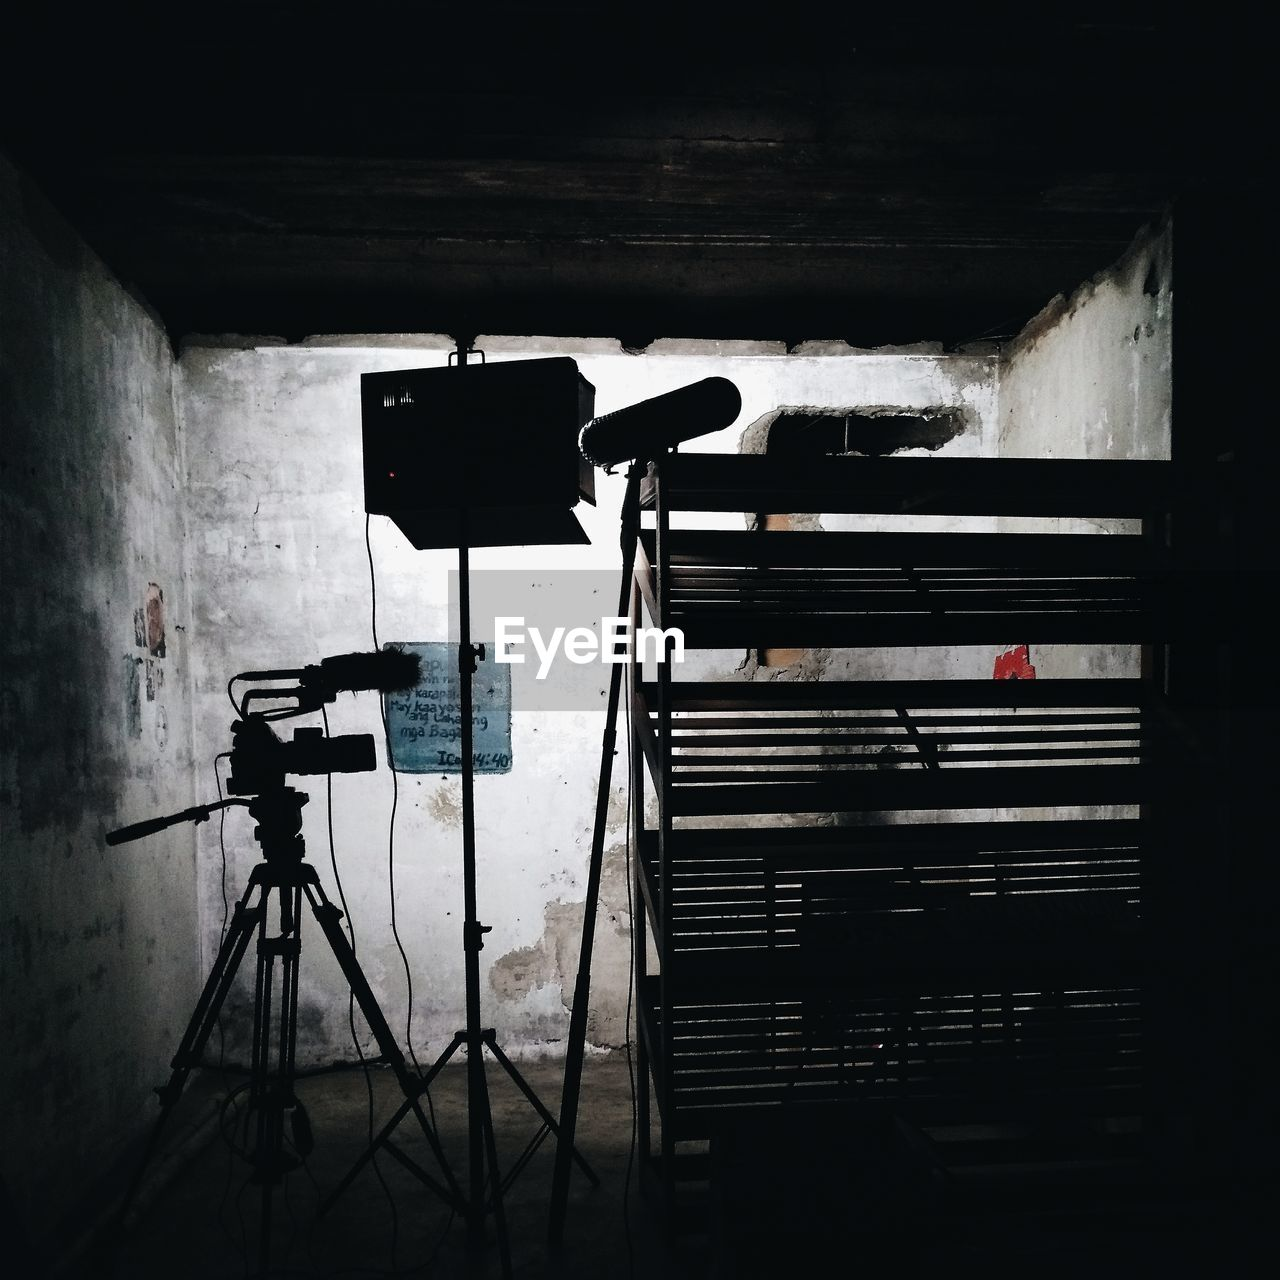 tripod, built structure, architecture, no people, indoors, photography themes, technology, wall - building feature, camera - photographic equipment, photographic equipment, communication, day, camera, staircase, building, silhouette, absence, arts culture and entertainment, railing, digital camera, filming